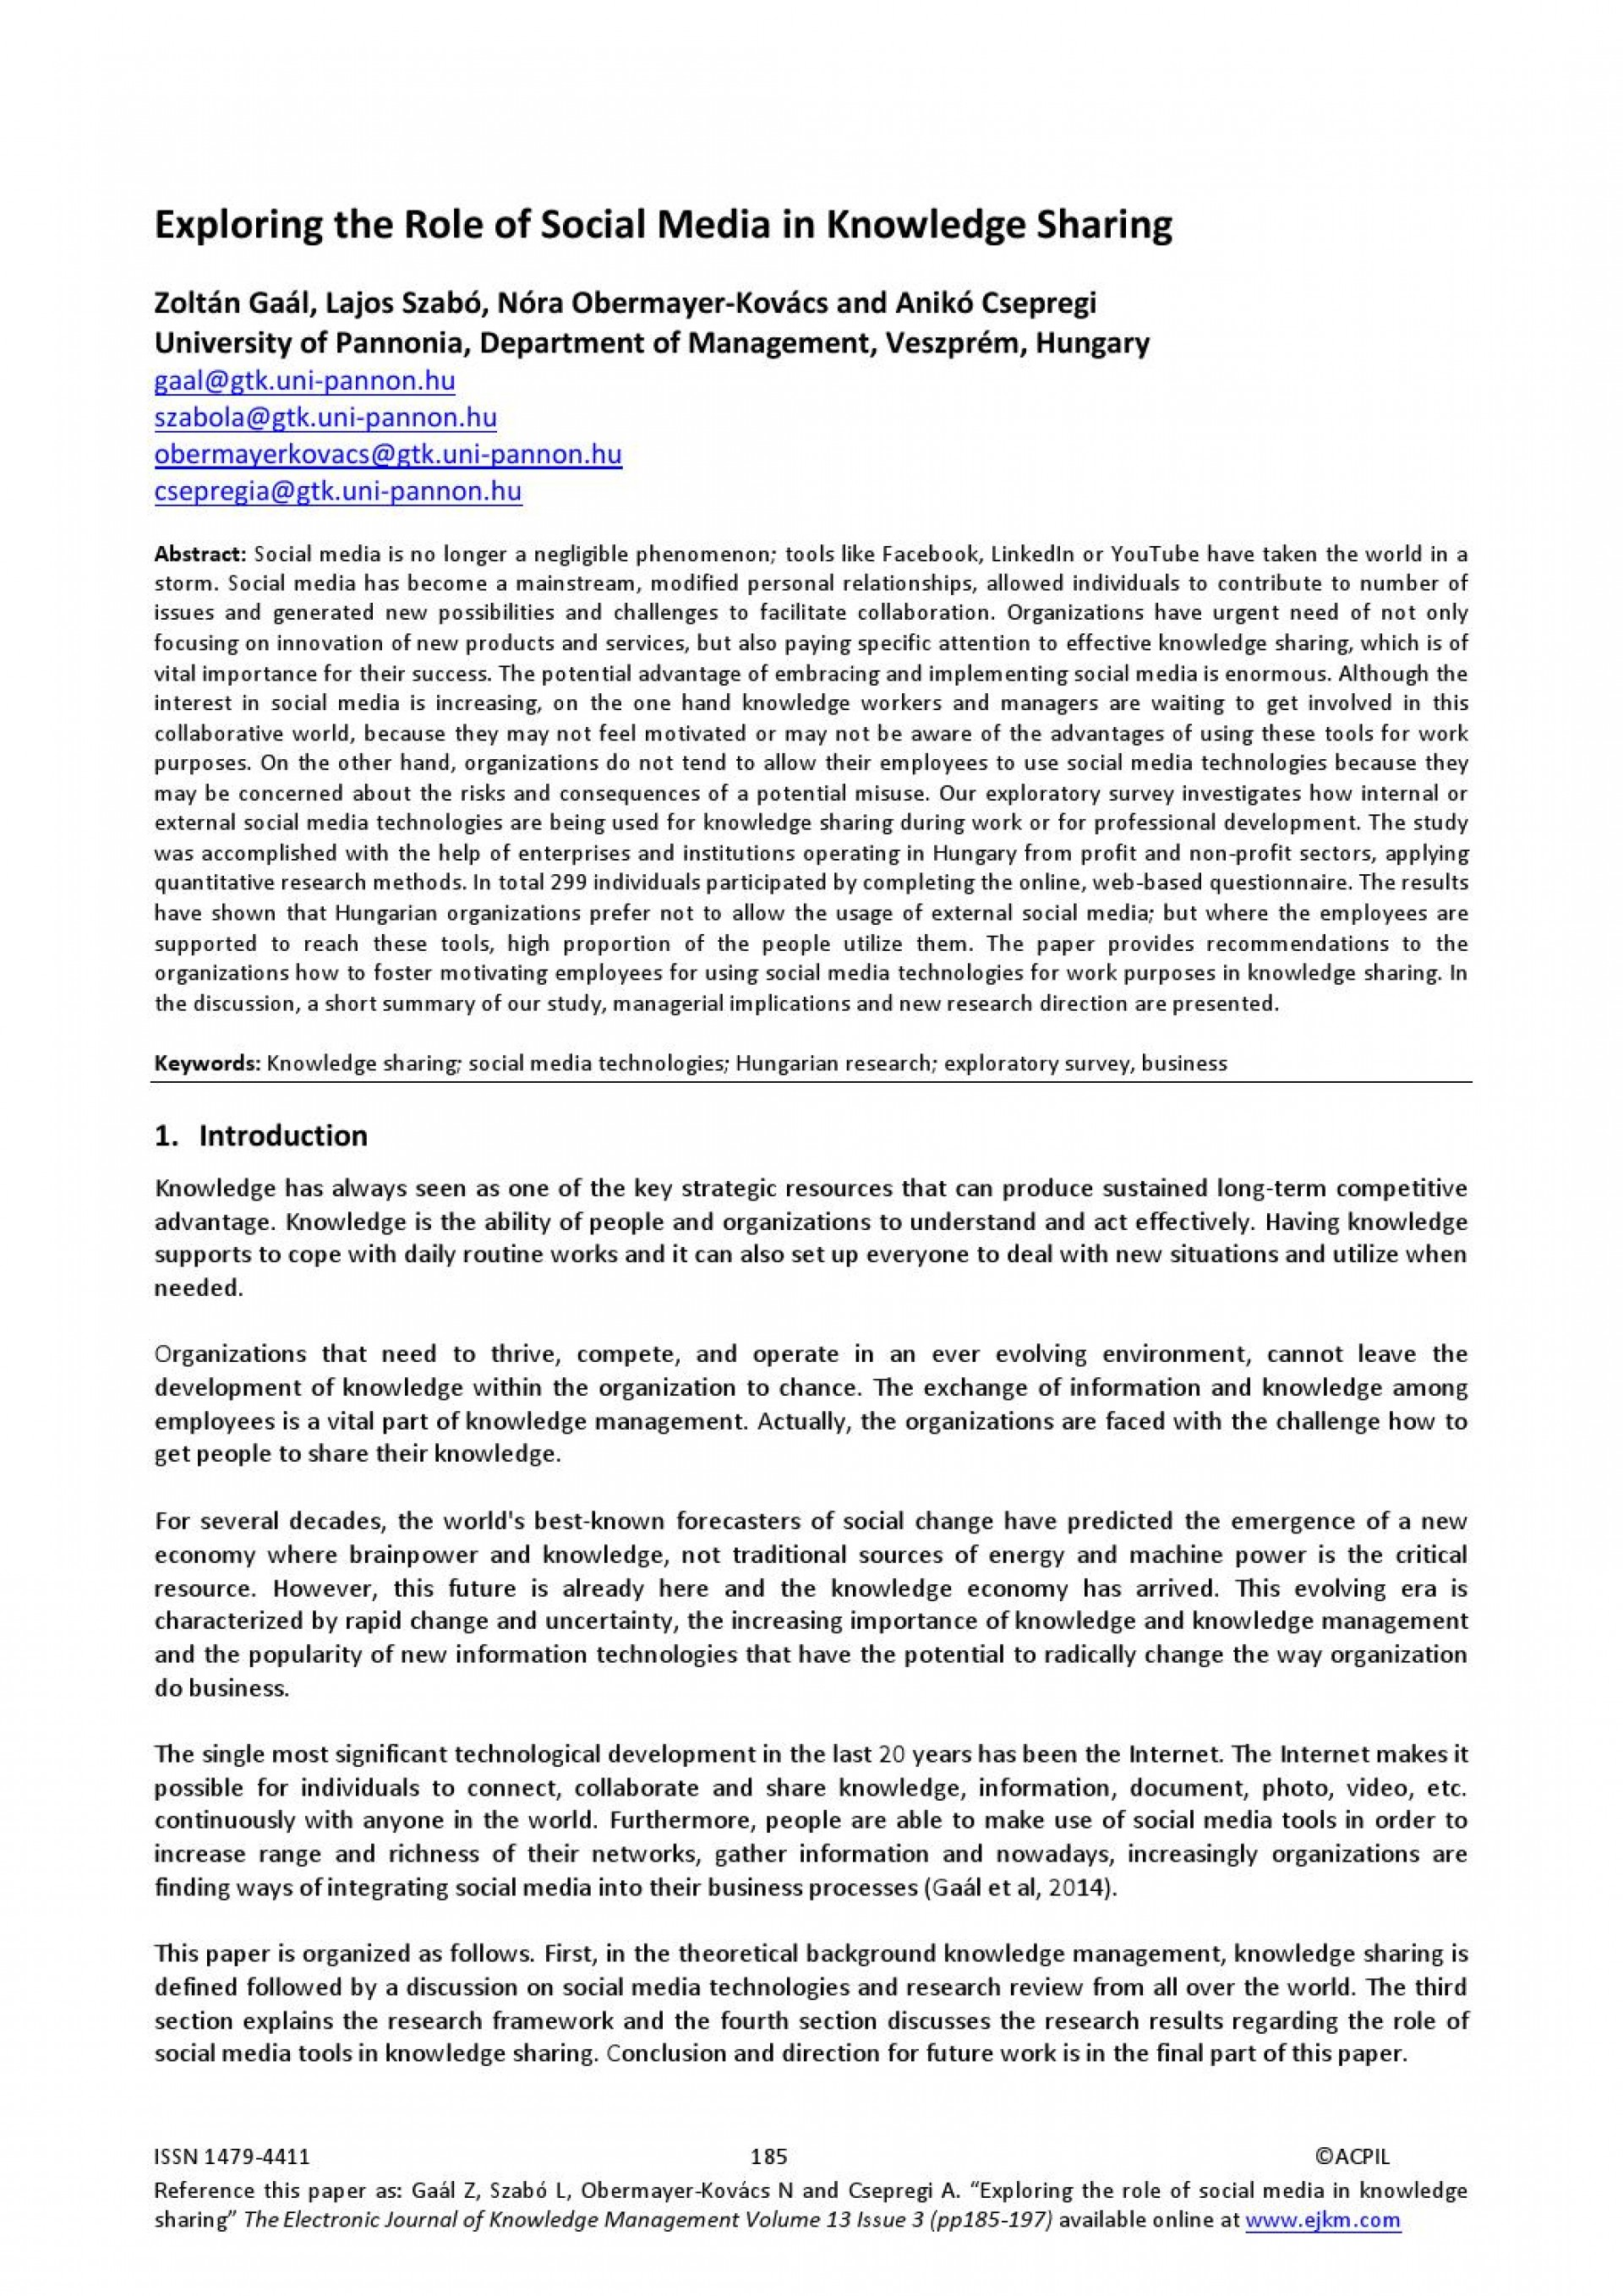 014 Conclusion For Research Paper About Social Media Page 1 Awful 1920